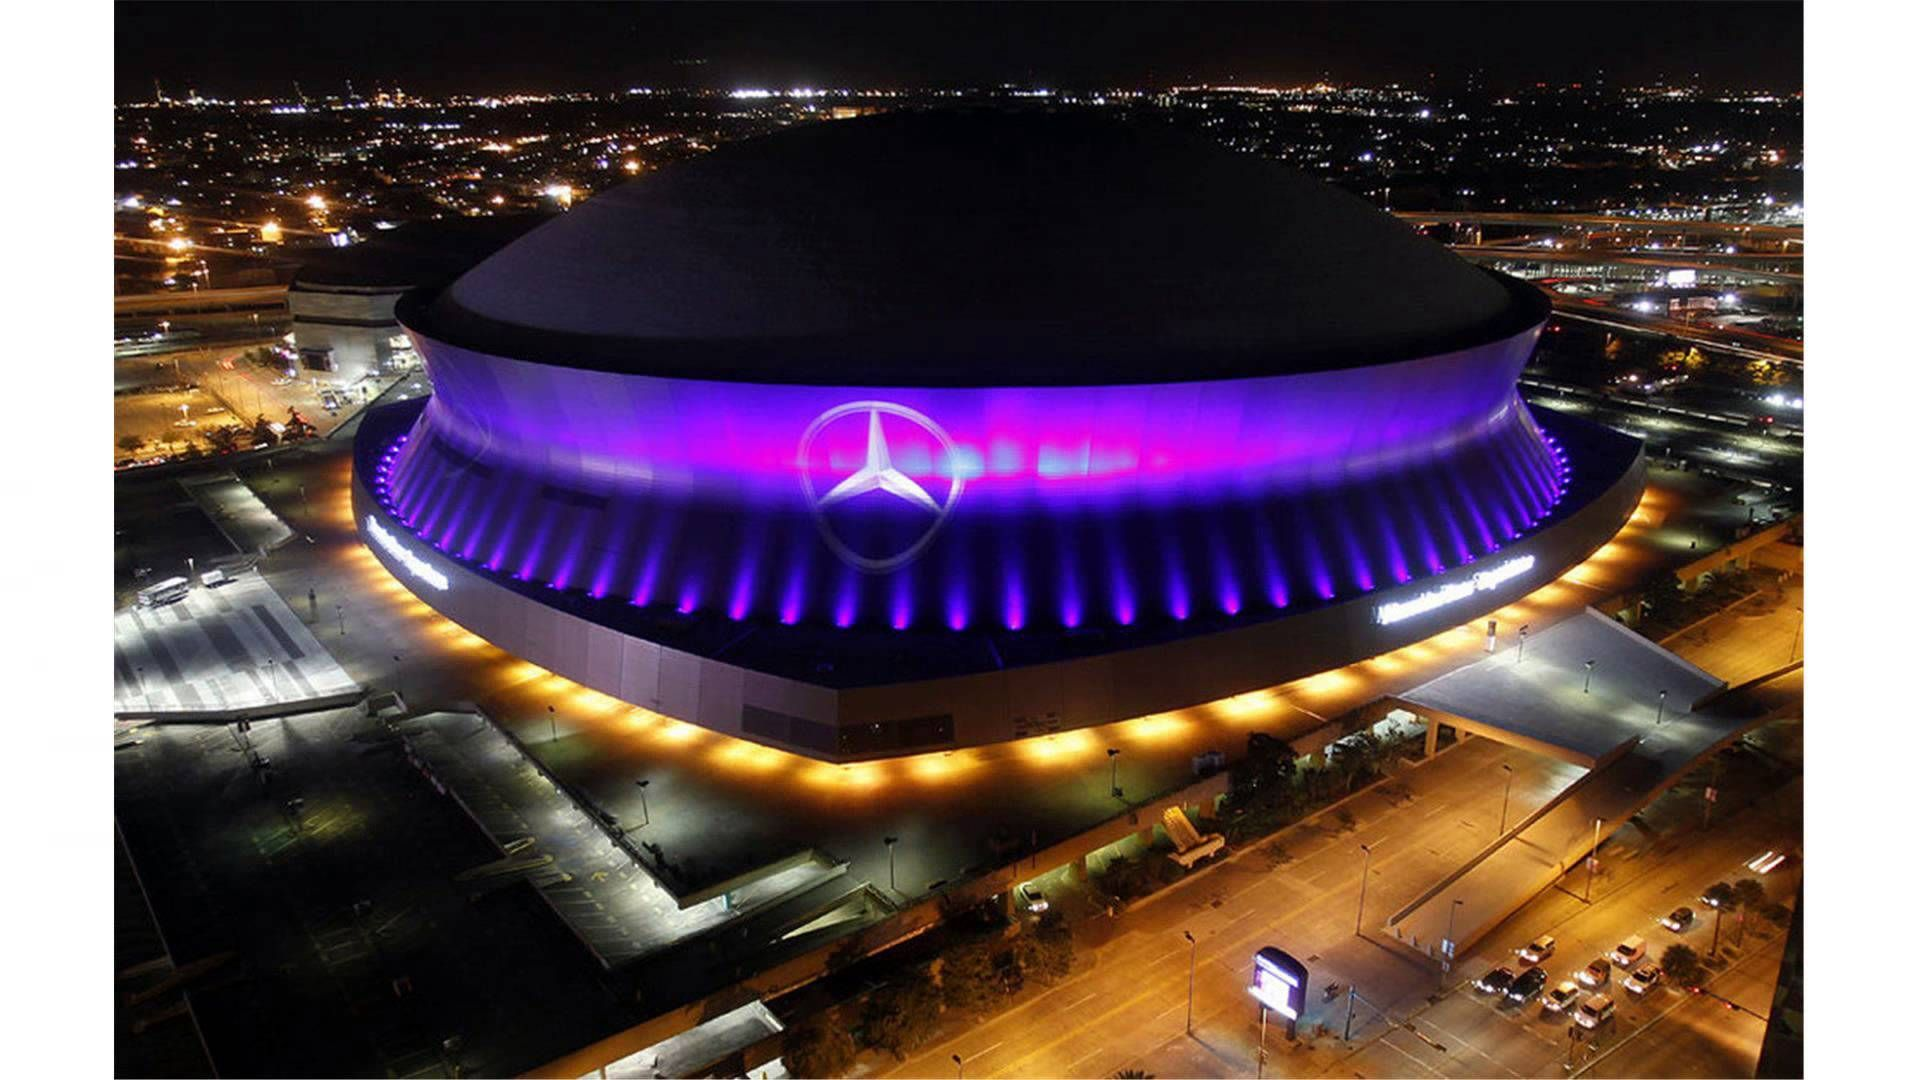 The MB Superdome seats over and is home to the 2009 SuperBowl champion New Orleans Saints